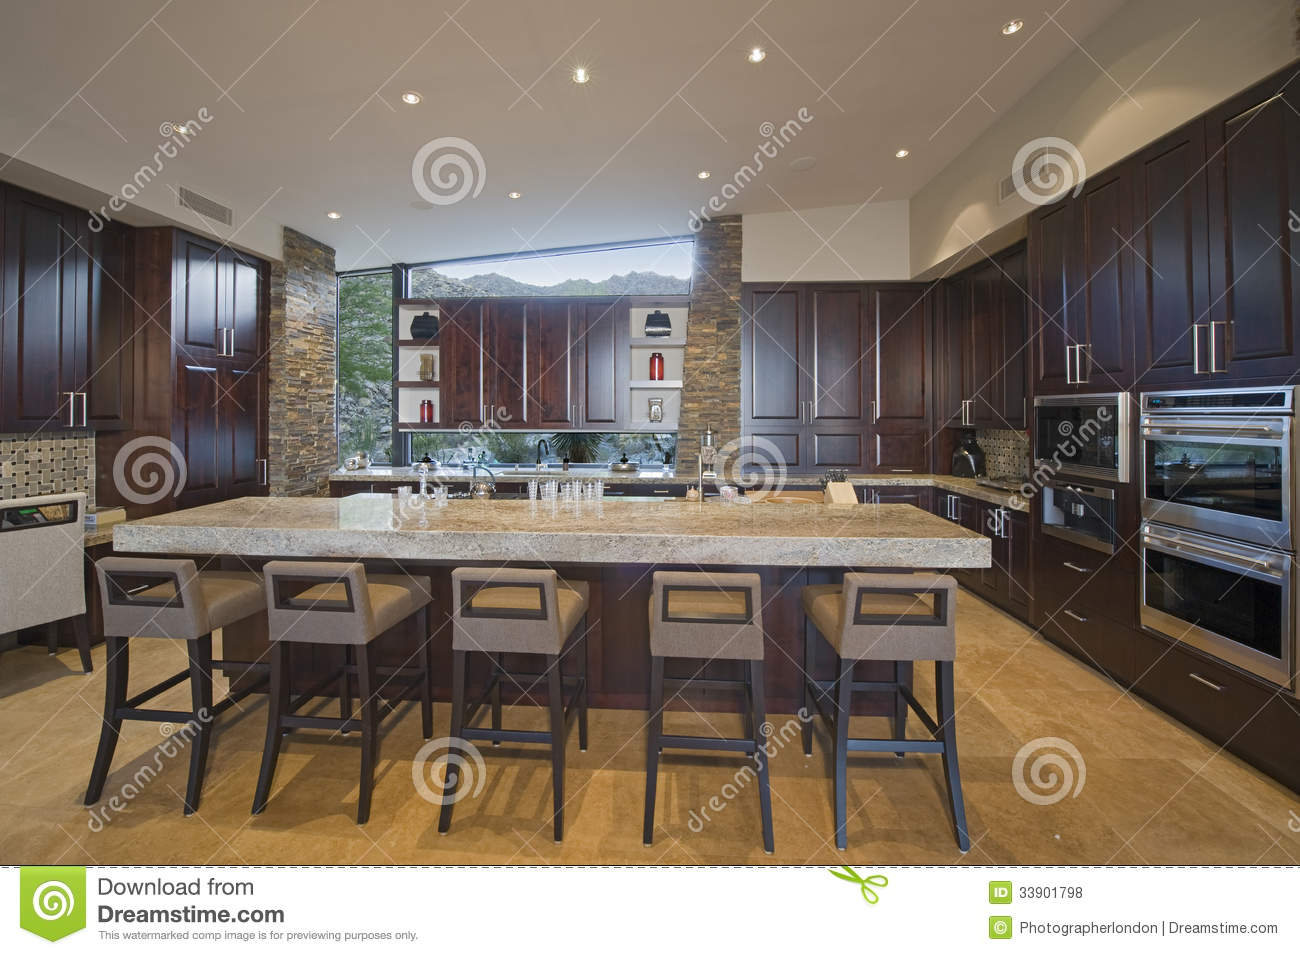 Kitchen Island With Room For Stools